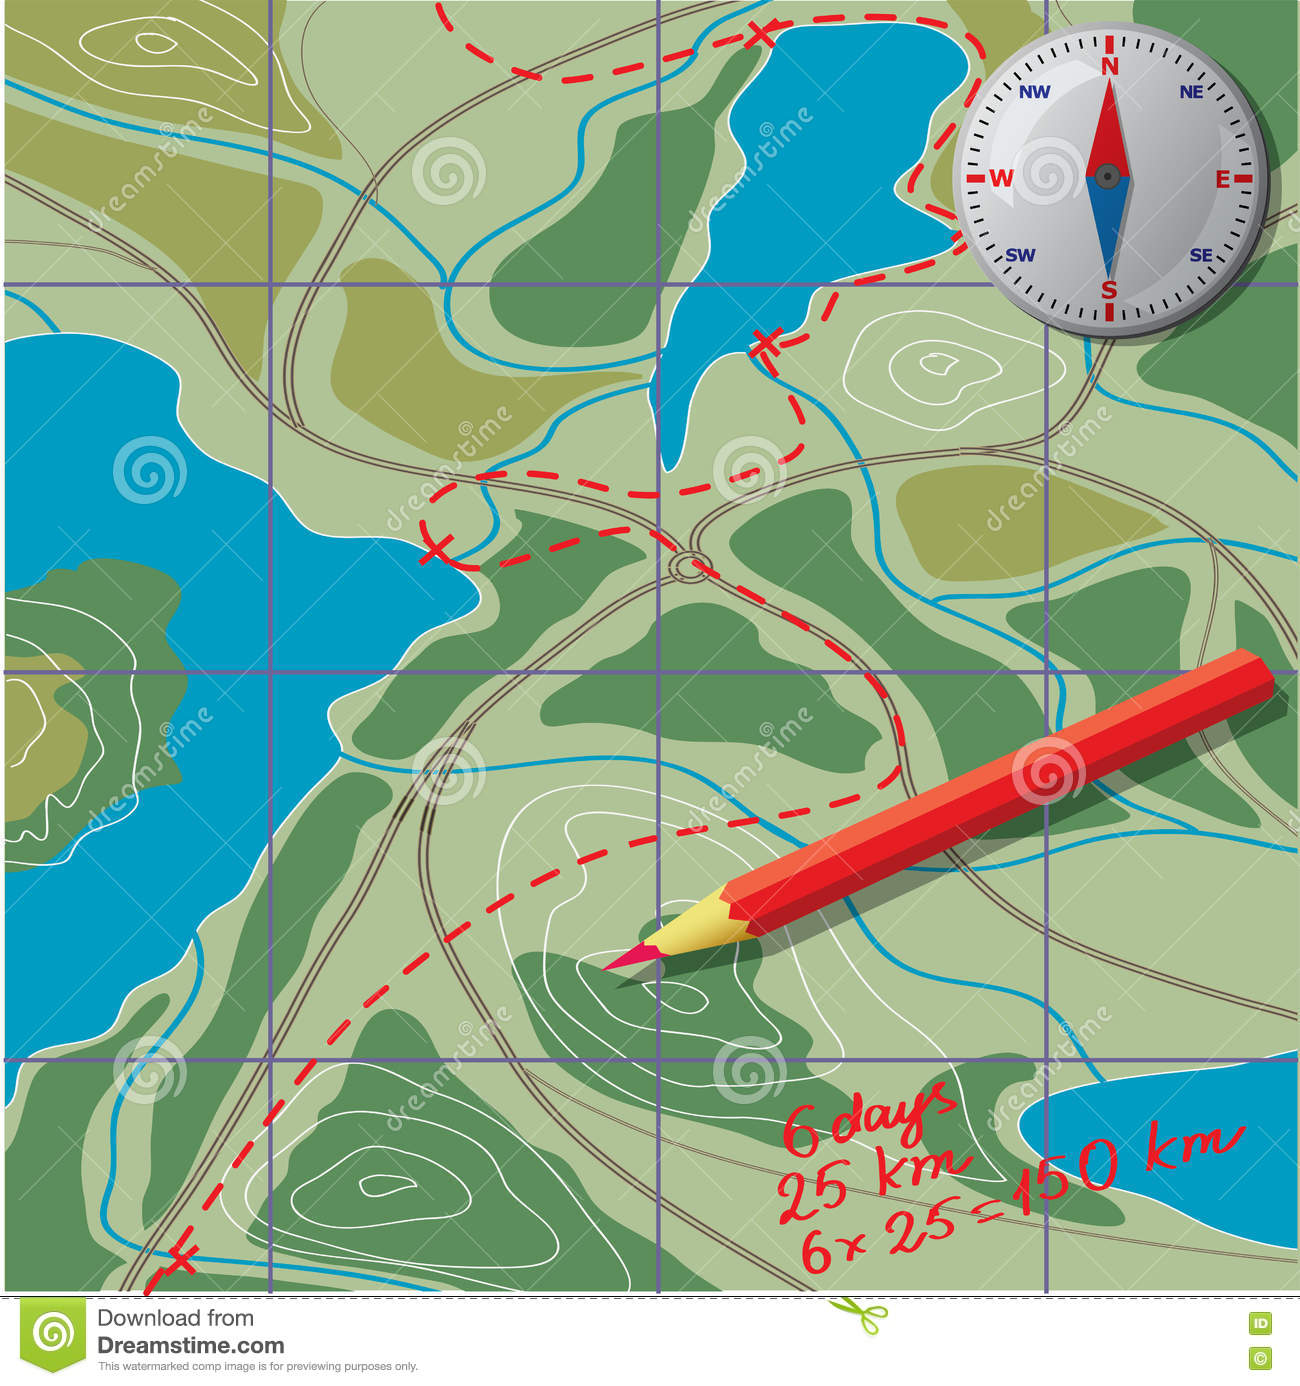 We Draw On The Map, Calculate The Distance. Stock Vector ... Draw Map Route on